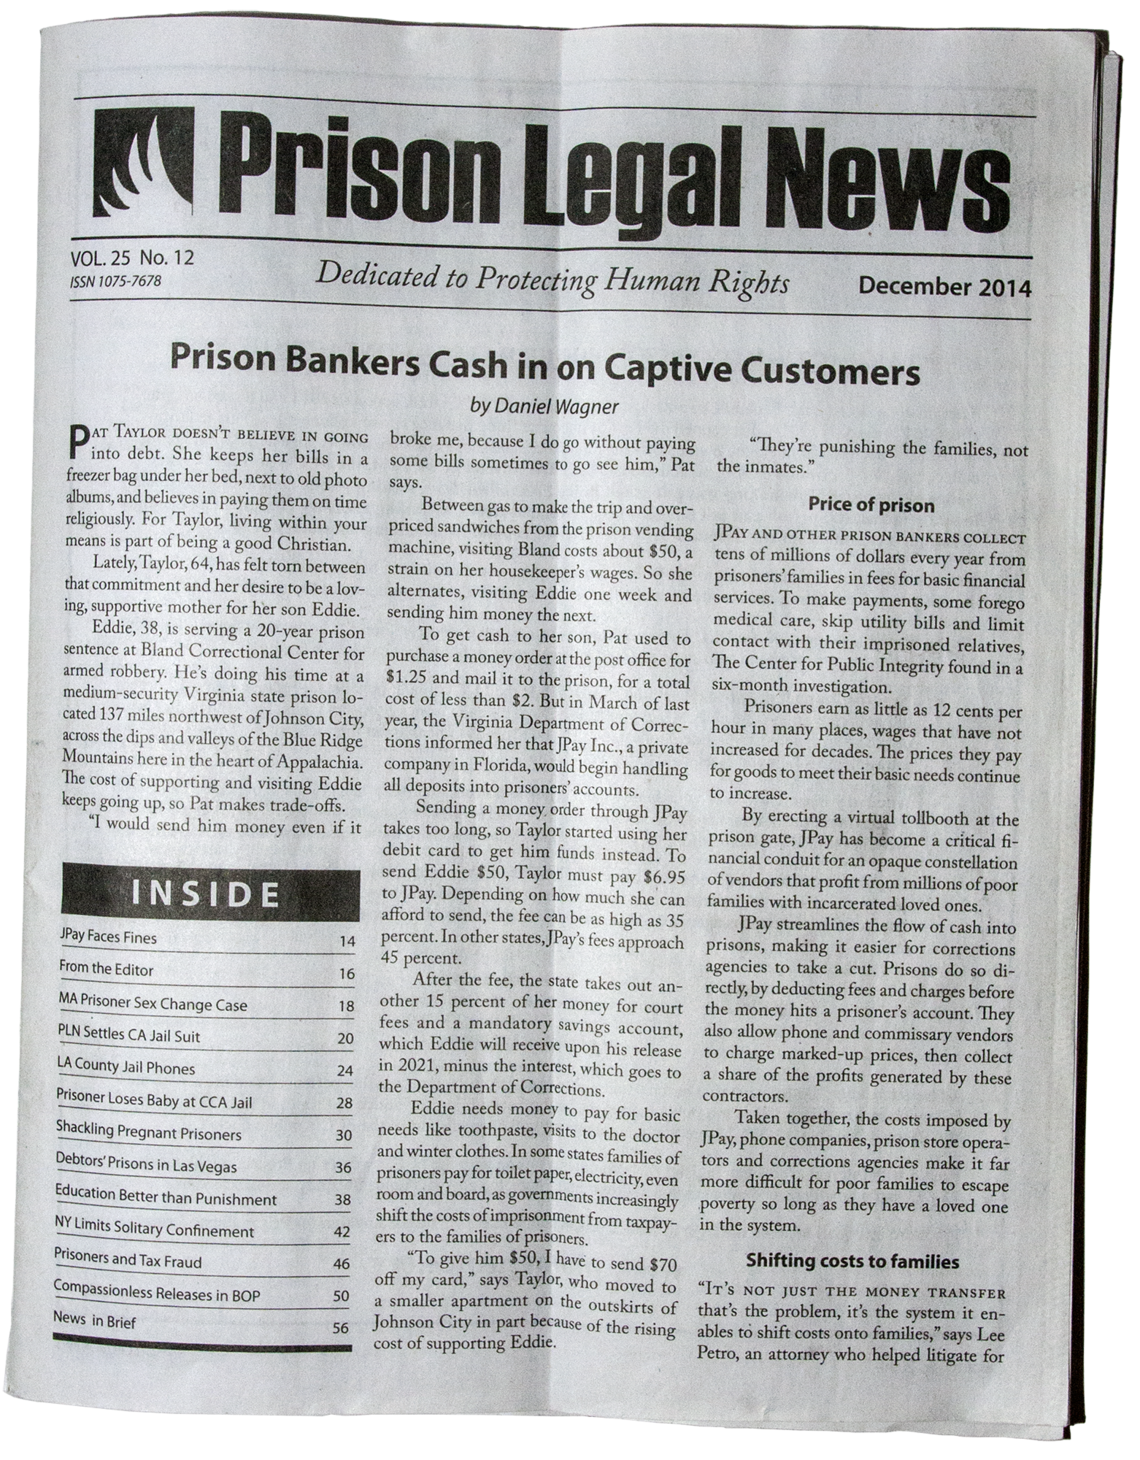 Paul Wright co-founded Prison Legal News, a monthly magazine, in 1990.